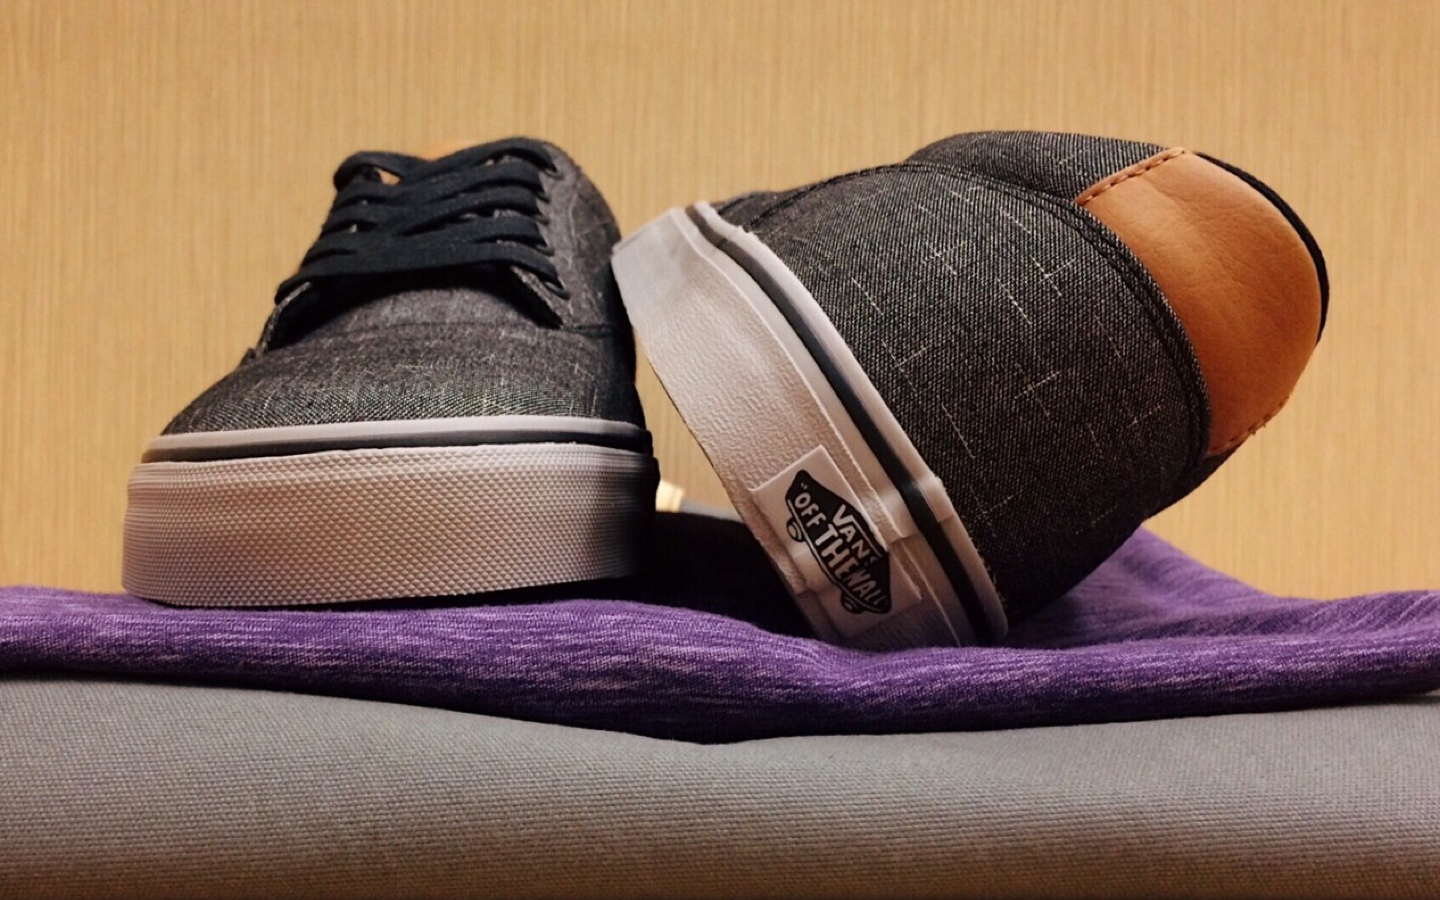 A pair of canvas grey vans with white soles and black shoelaces on top of a folded purple heathered shirt and grey canvas jeans